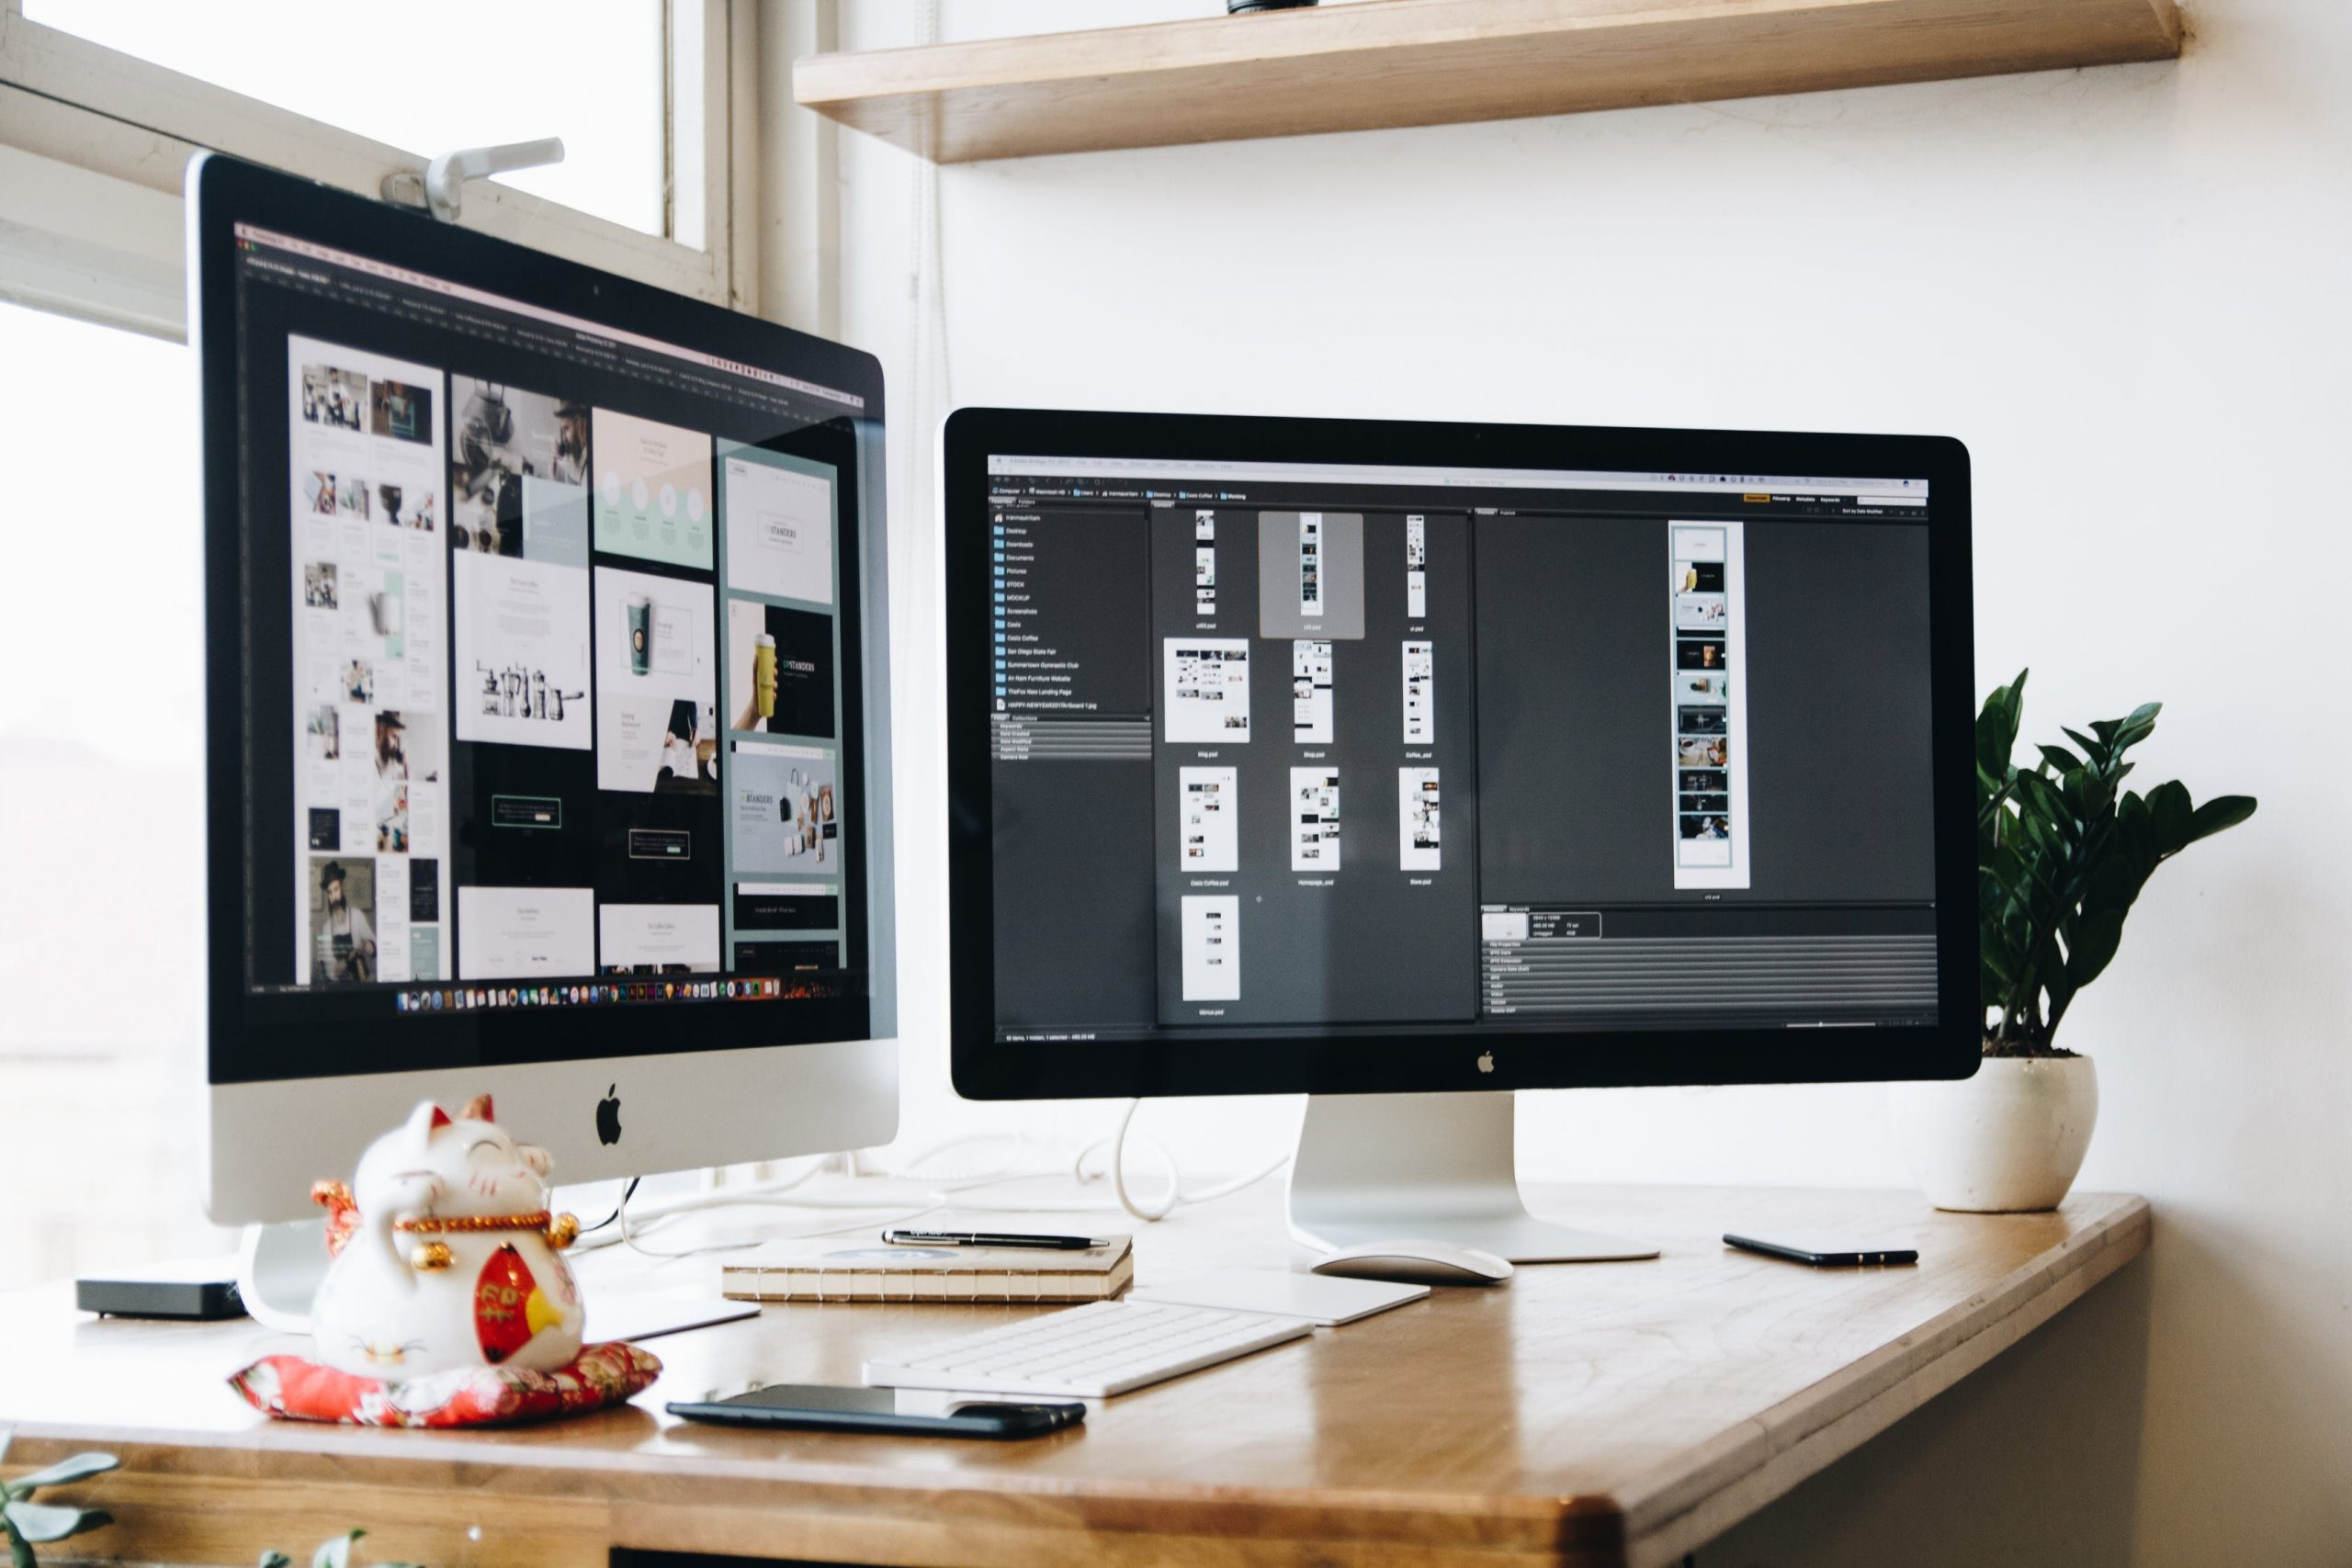 Two iMac screens on a desk, one displaying pictures and another image editing software in use.